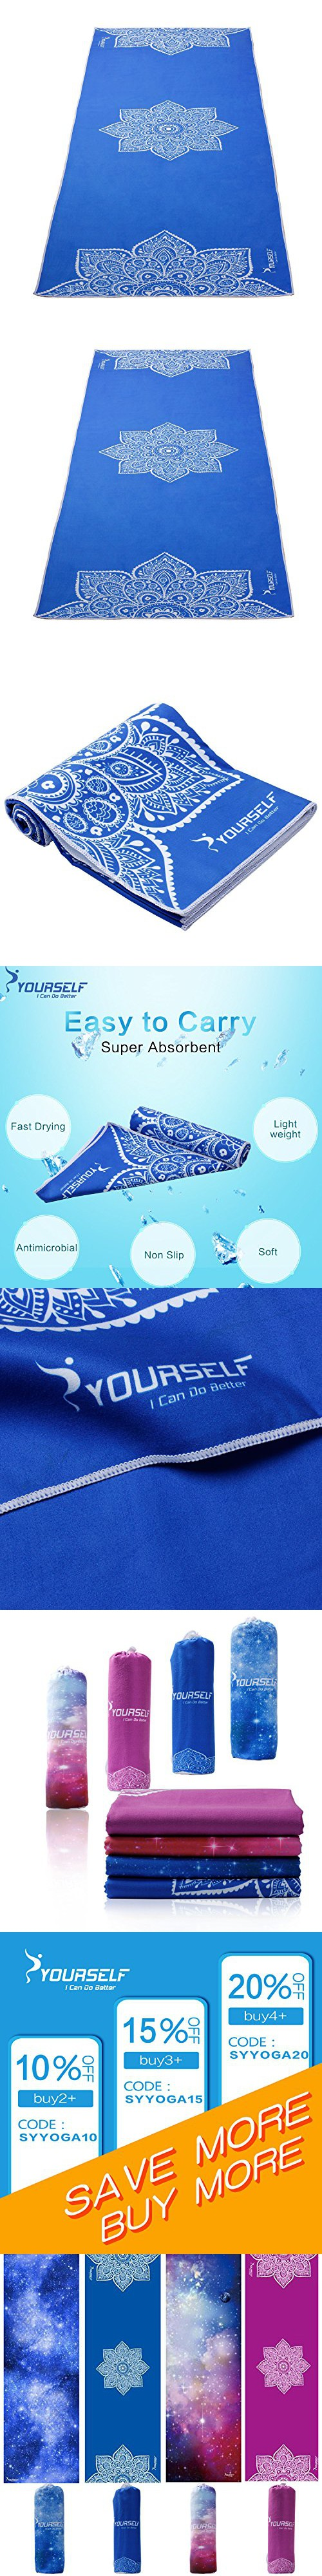 "Syourself Yoga Towel-72""x24"" - Non Slip,Ultra Absorbent,Soft-Perfect Microfiber Hot/Skidless/Bikram Yoga Mat Towel for Fitness, Exercise,Sports& Outdoors +Travel Bag(Blue flower, L:72""x24"")"